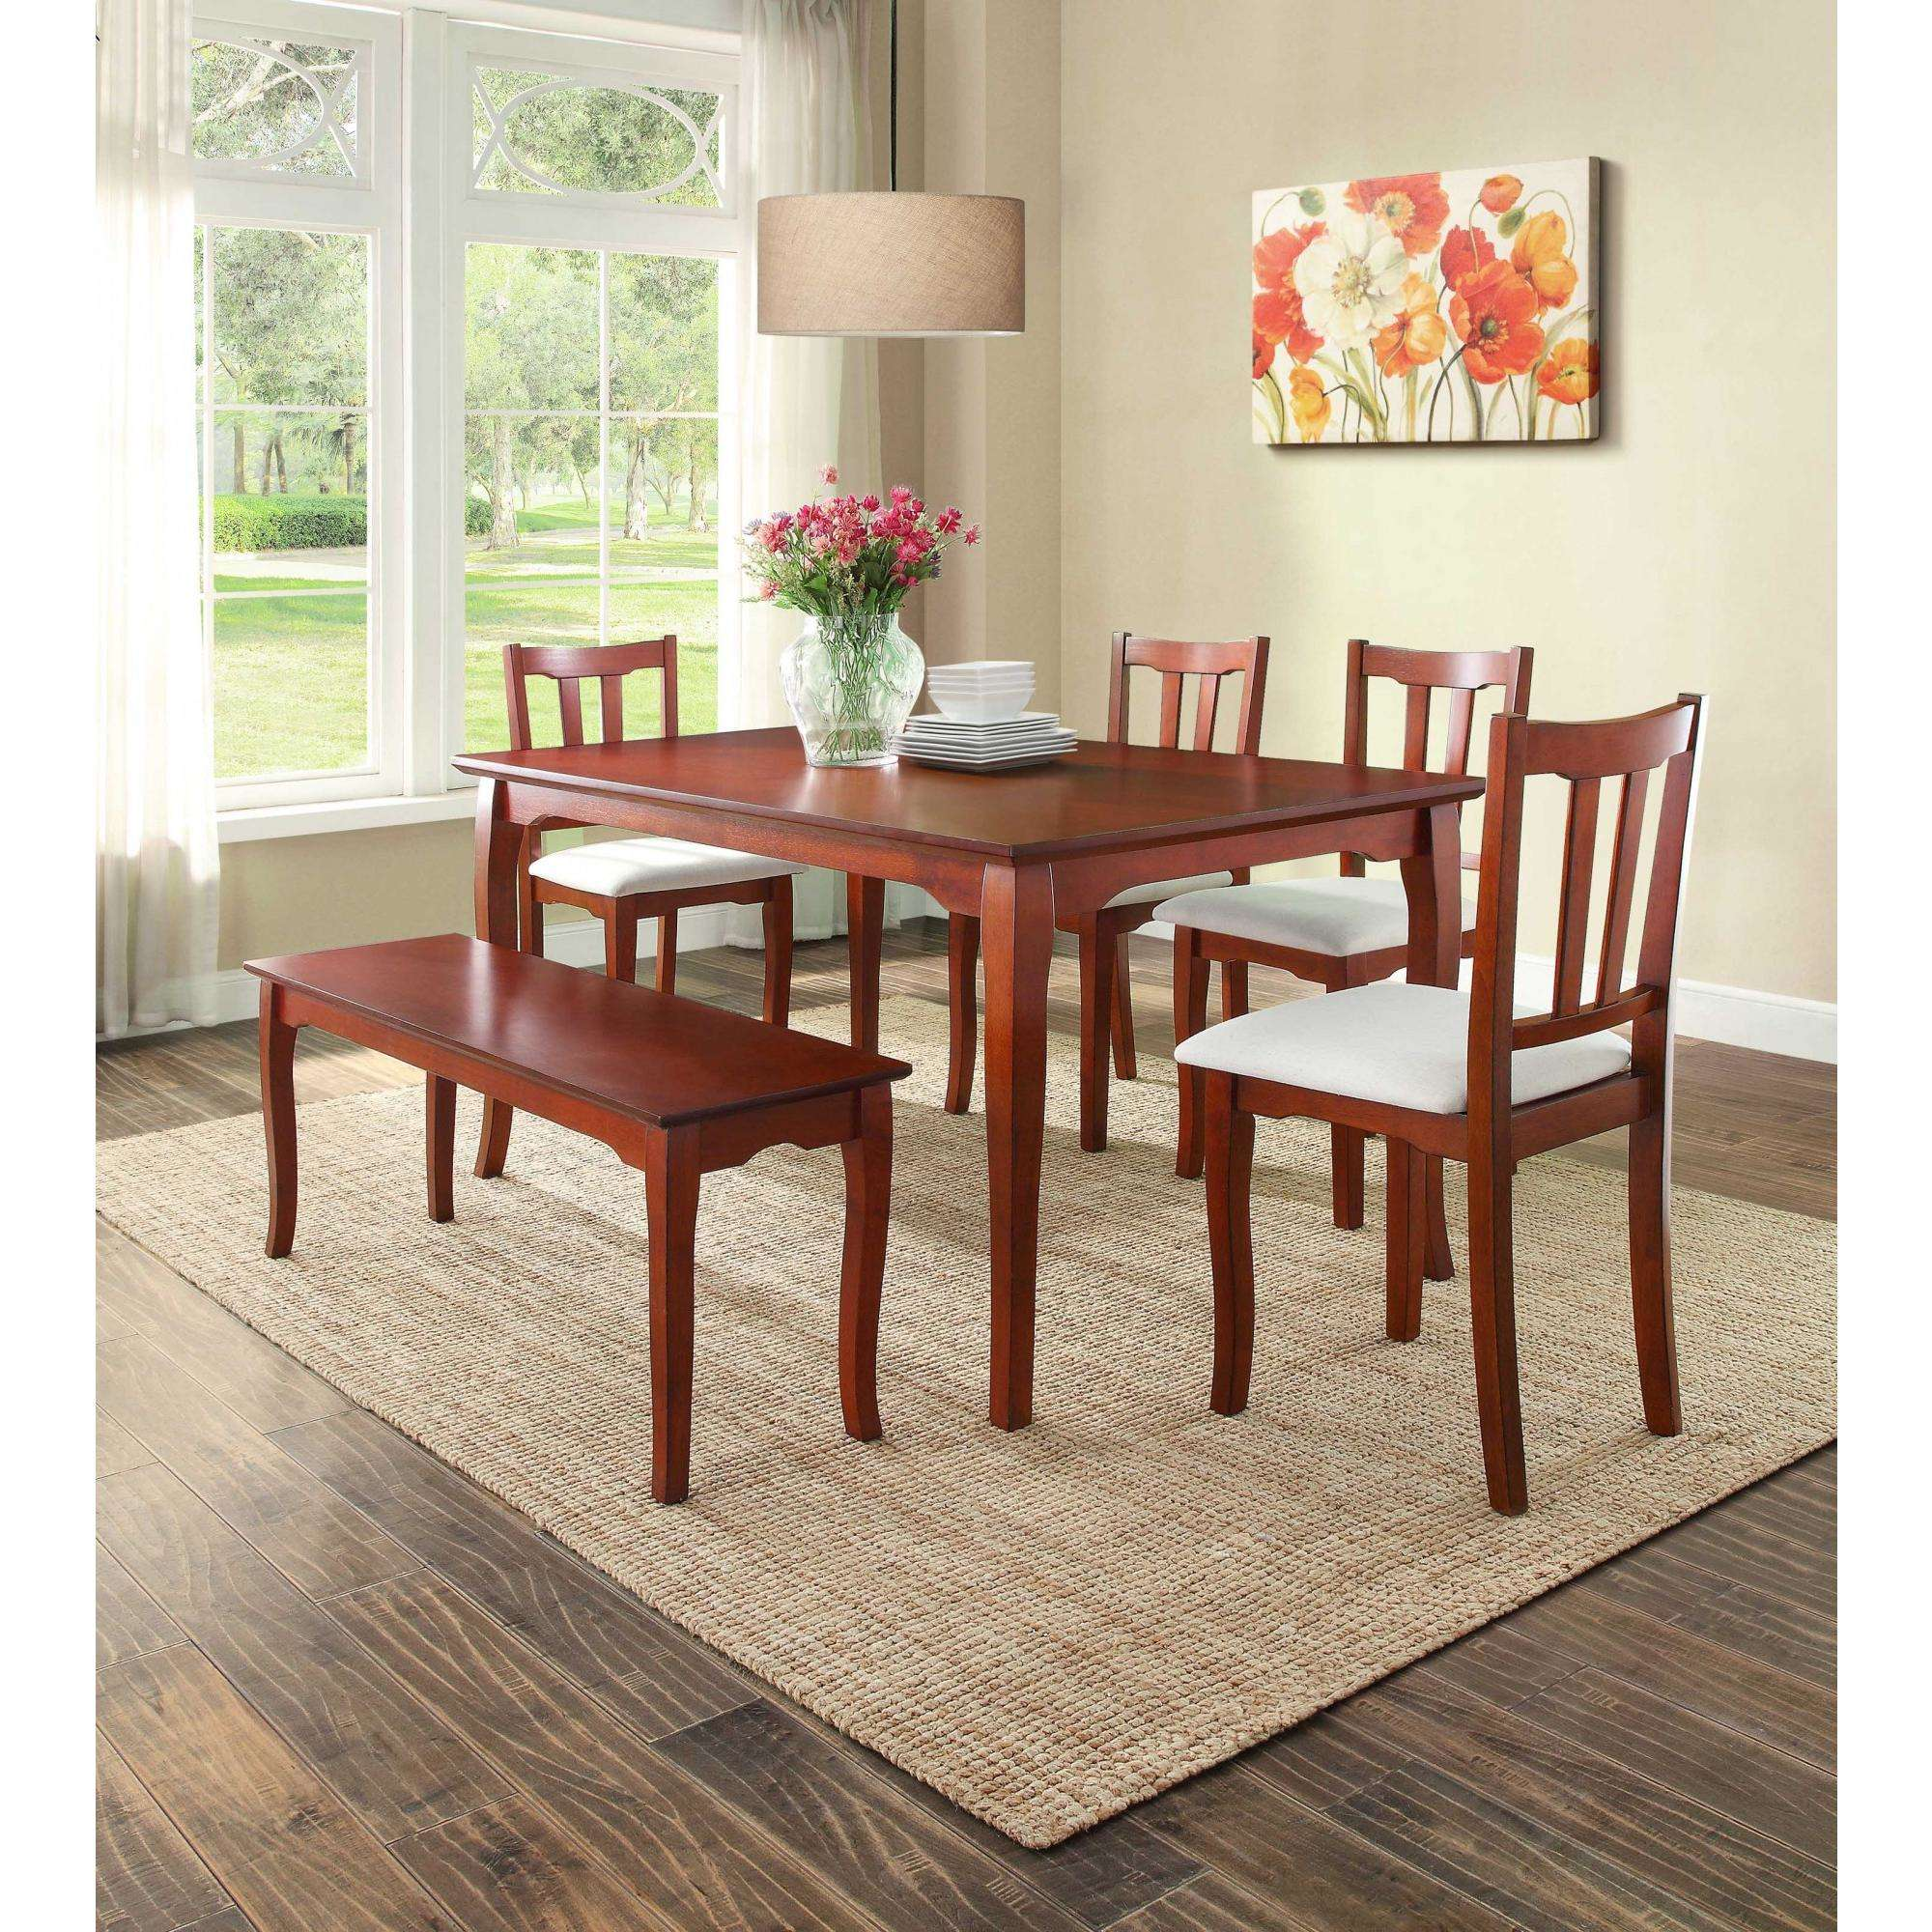 Better Homes and Gardens Ashwood Road Dining Table, Brown Cherry by Generic